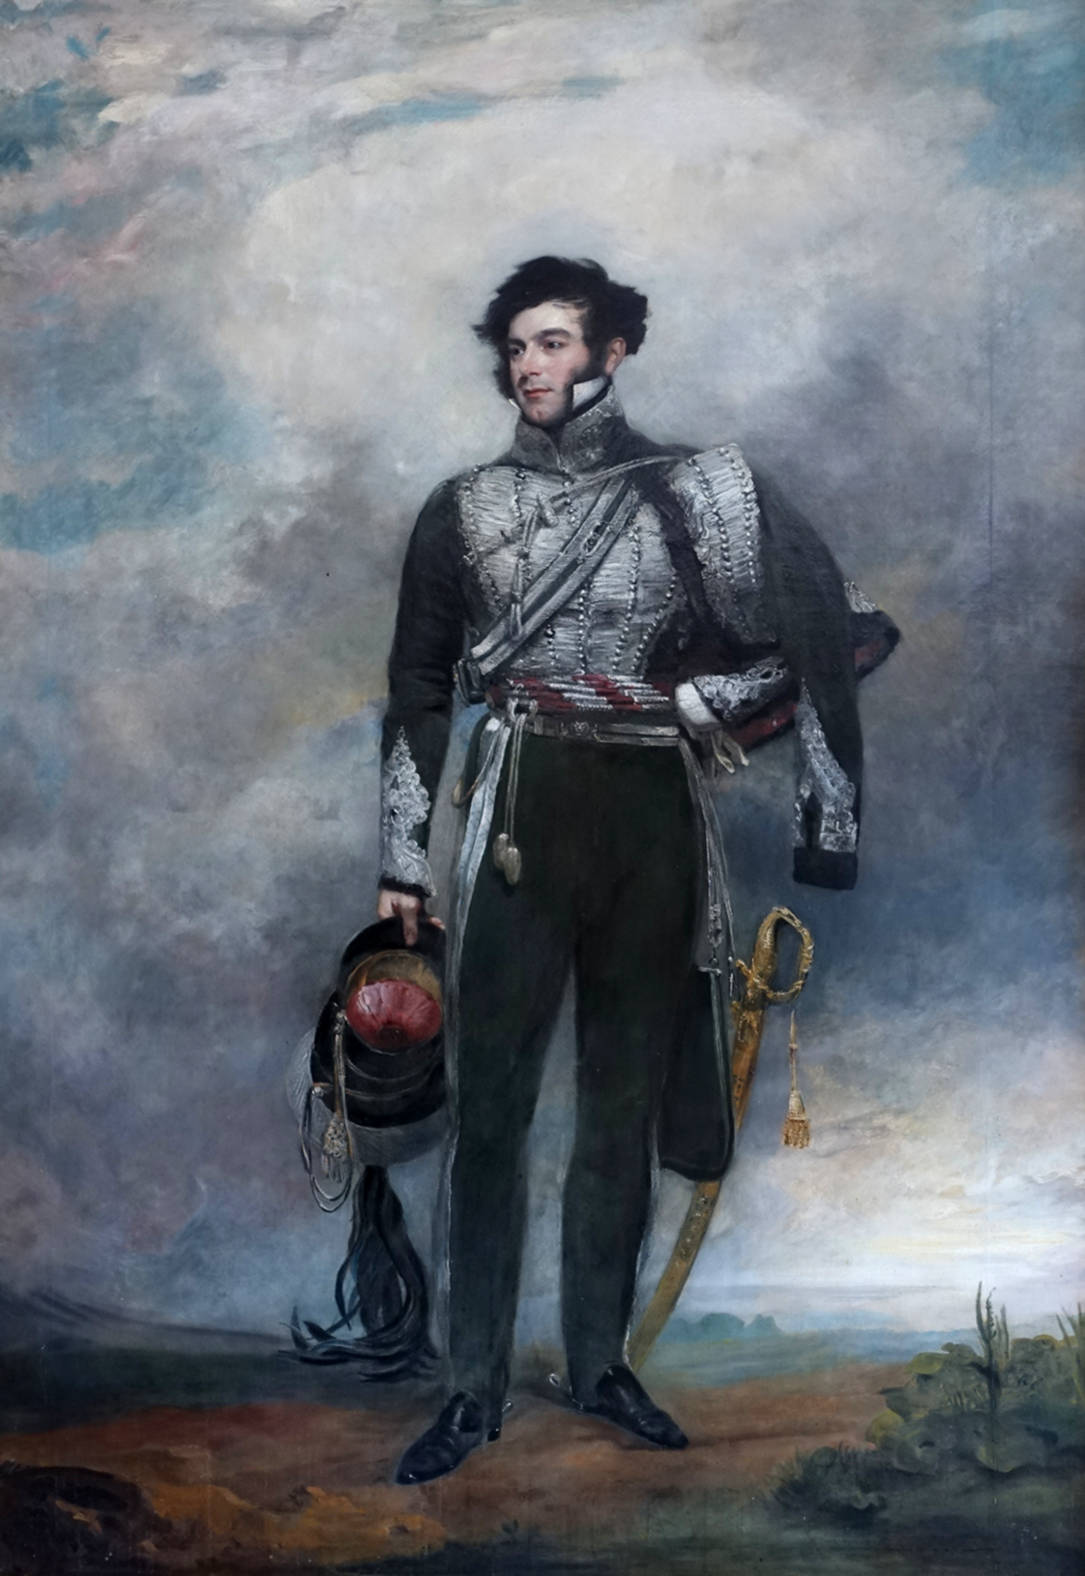 Richard Temple-Nugent-Brydges-Chandos-Grenville, 2nd Duke of Buckingham and Chandos by John Jackson, 1830